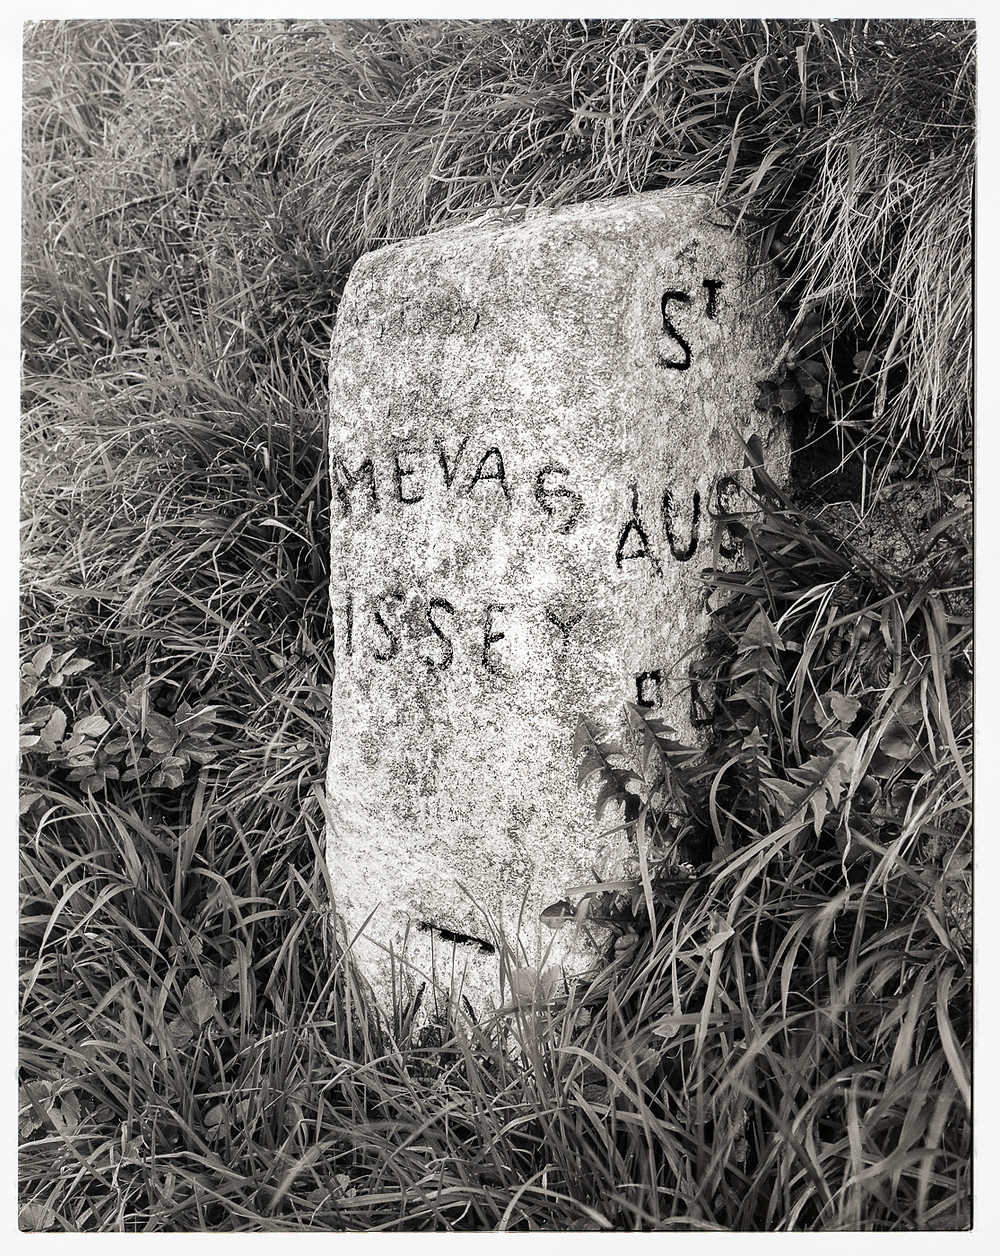 weathered  granite milestone, whitewashed with crudely painted letters